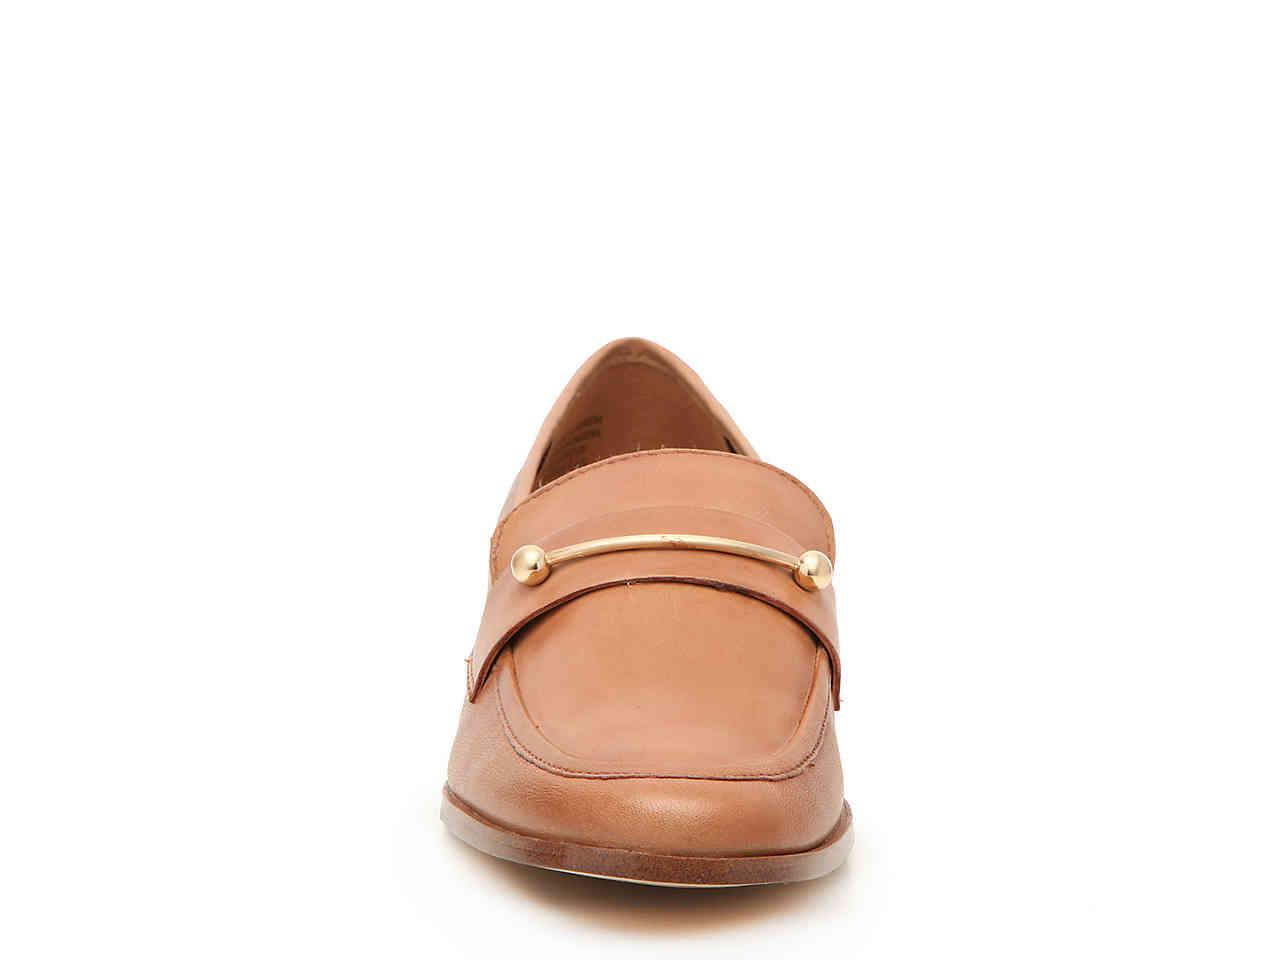 f8c8ad80d7a Lyst - ALDO Alelonna Loafer in Brown